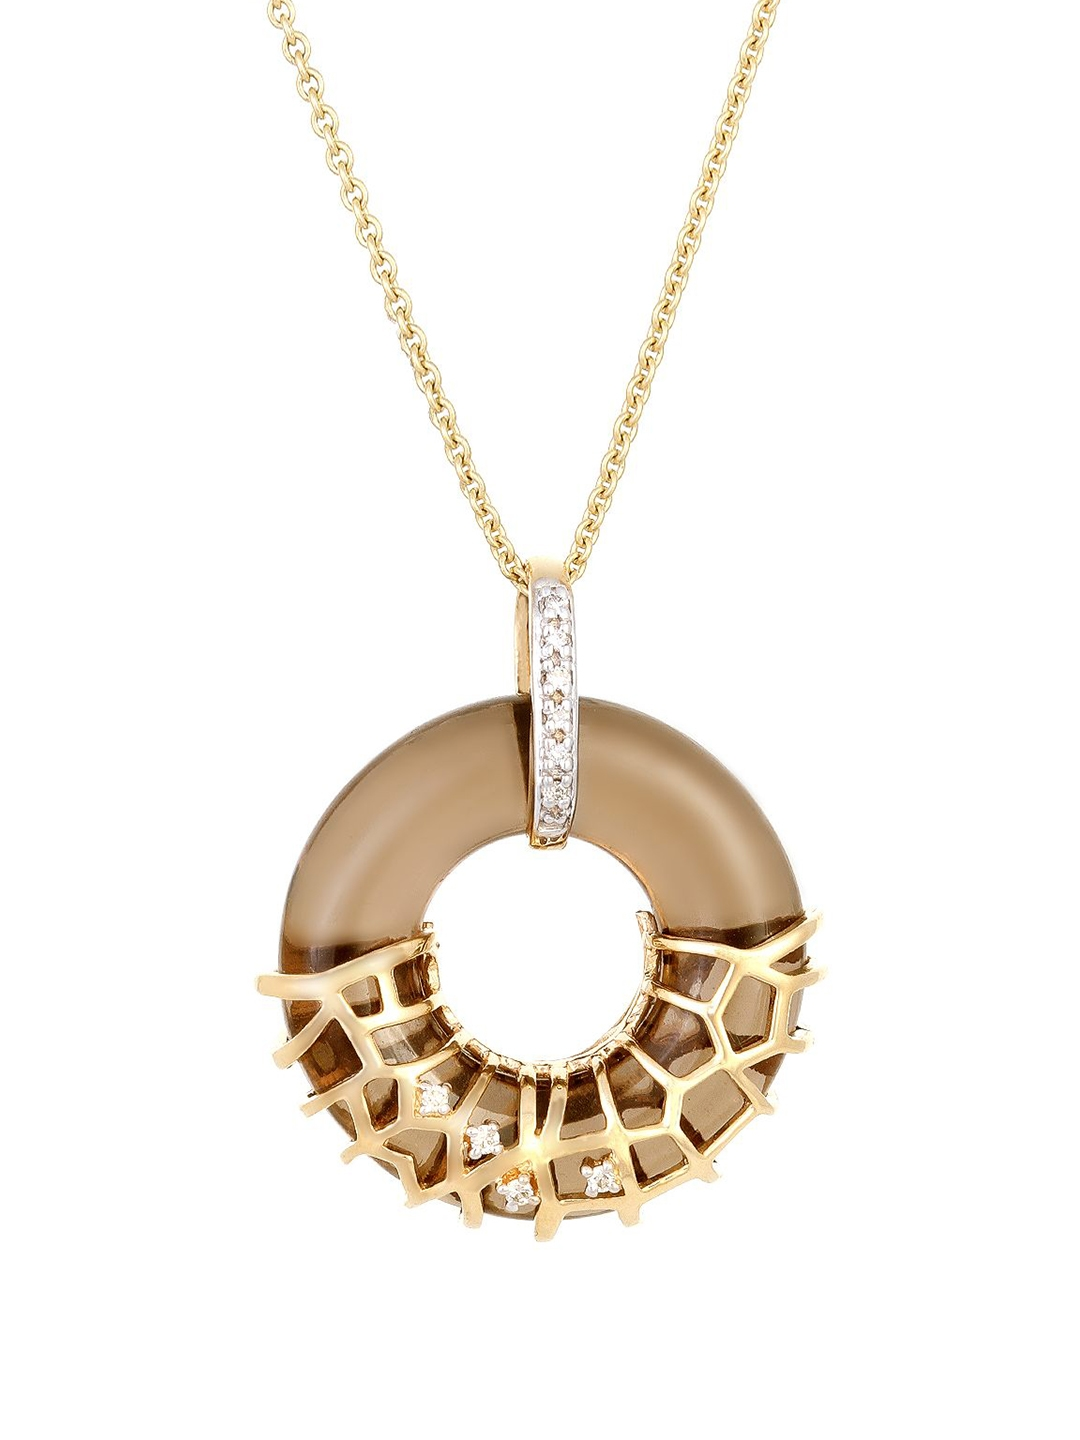 Mia by Tanishq 14KT Gold Precious Pendant with Diamonds   Quartz